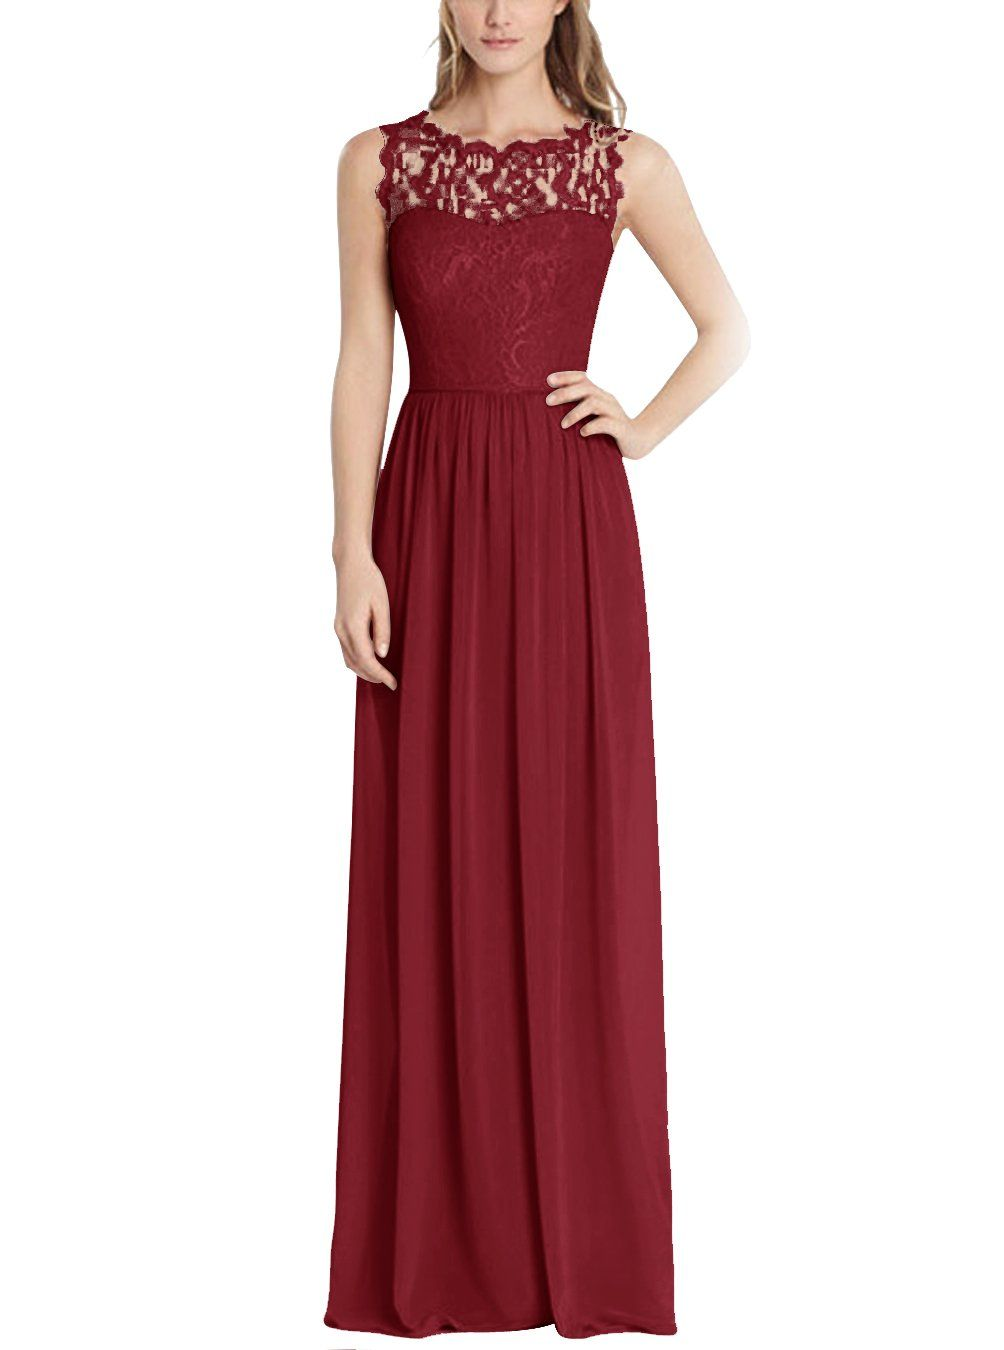 Lace button up wedding dress november 2018  Best images about Burgundy Bridesmaid Dresses on Pinterest